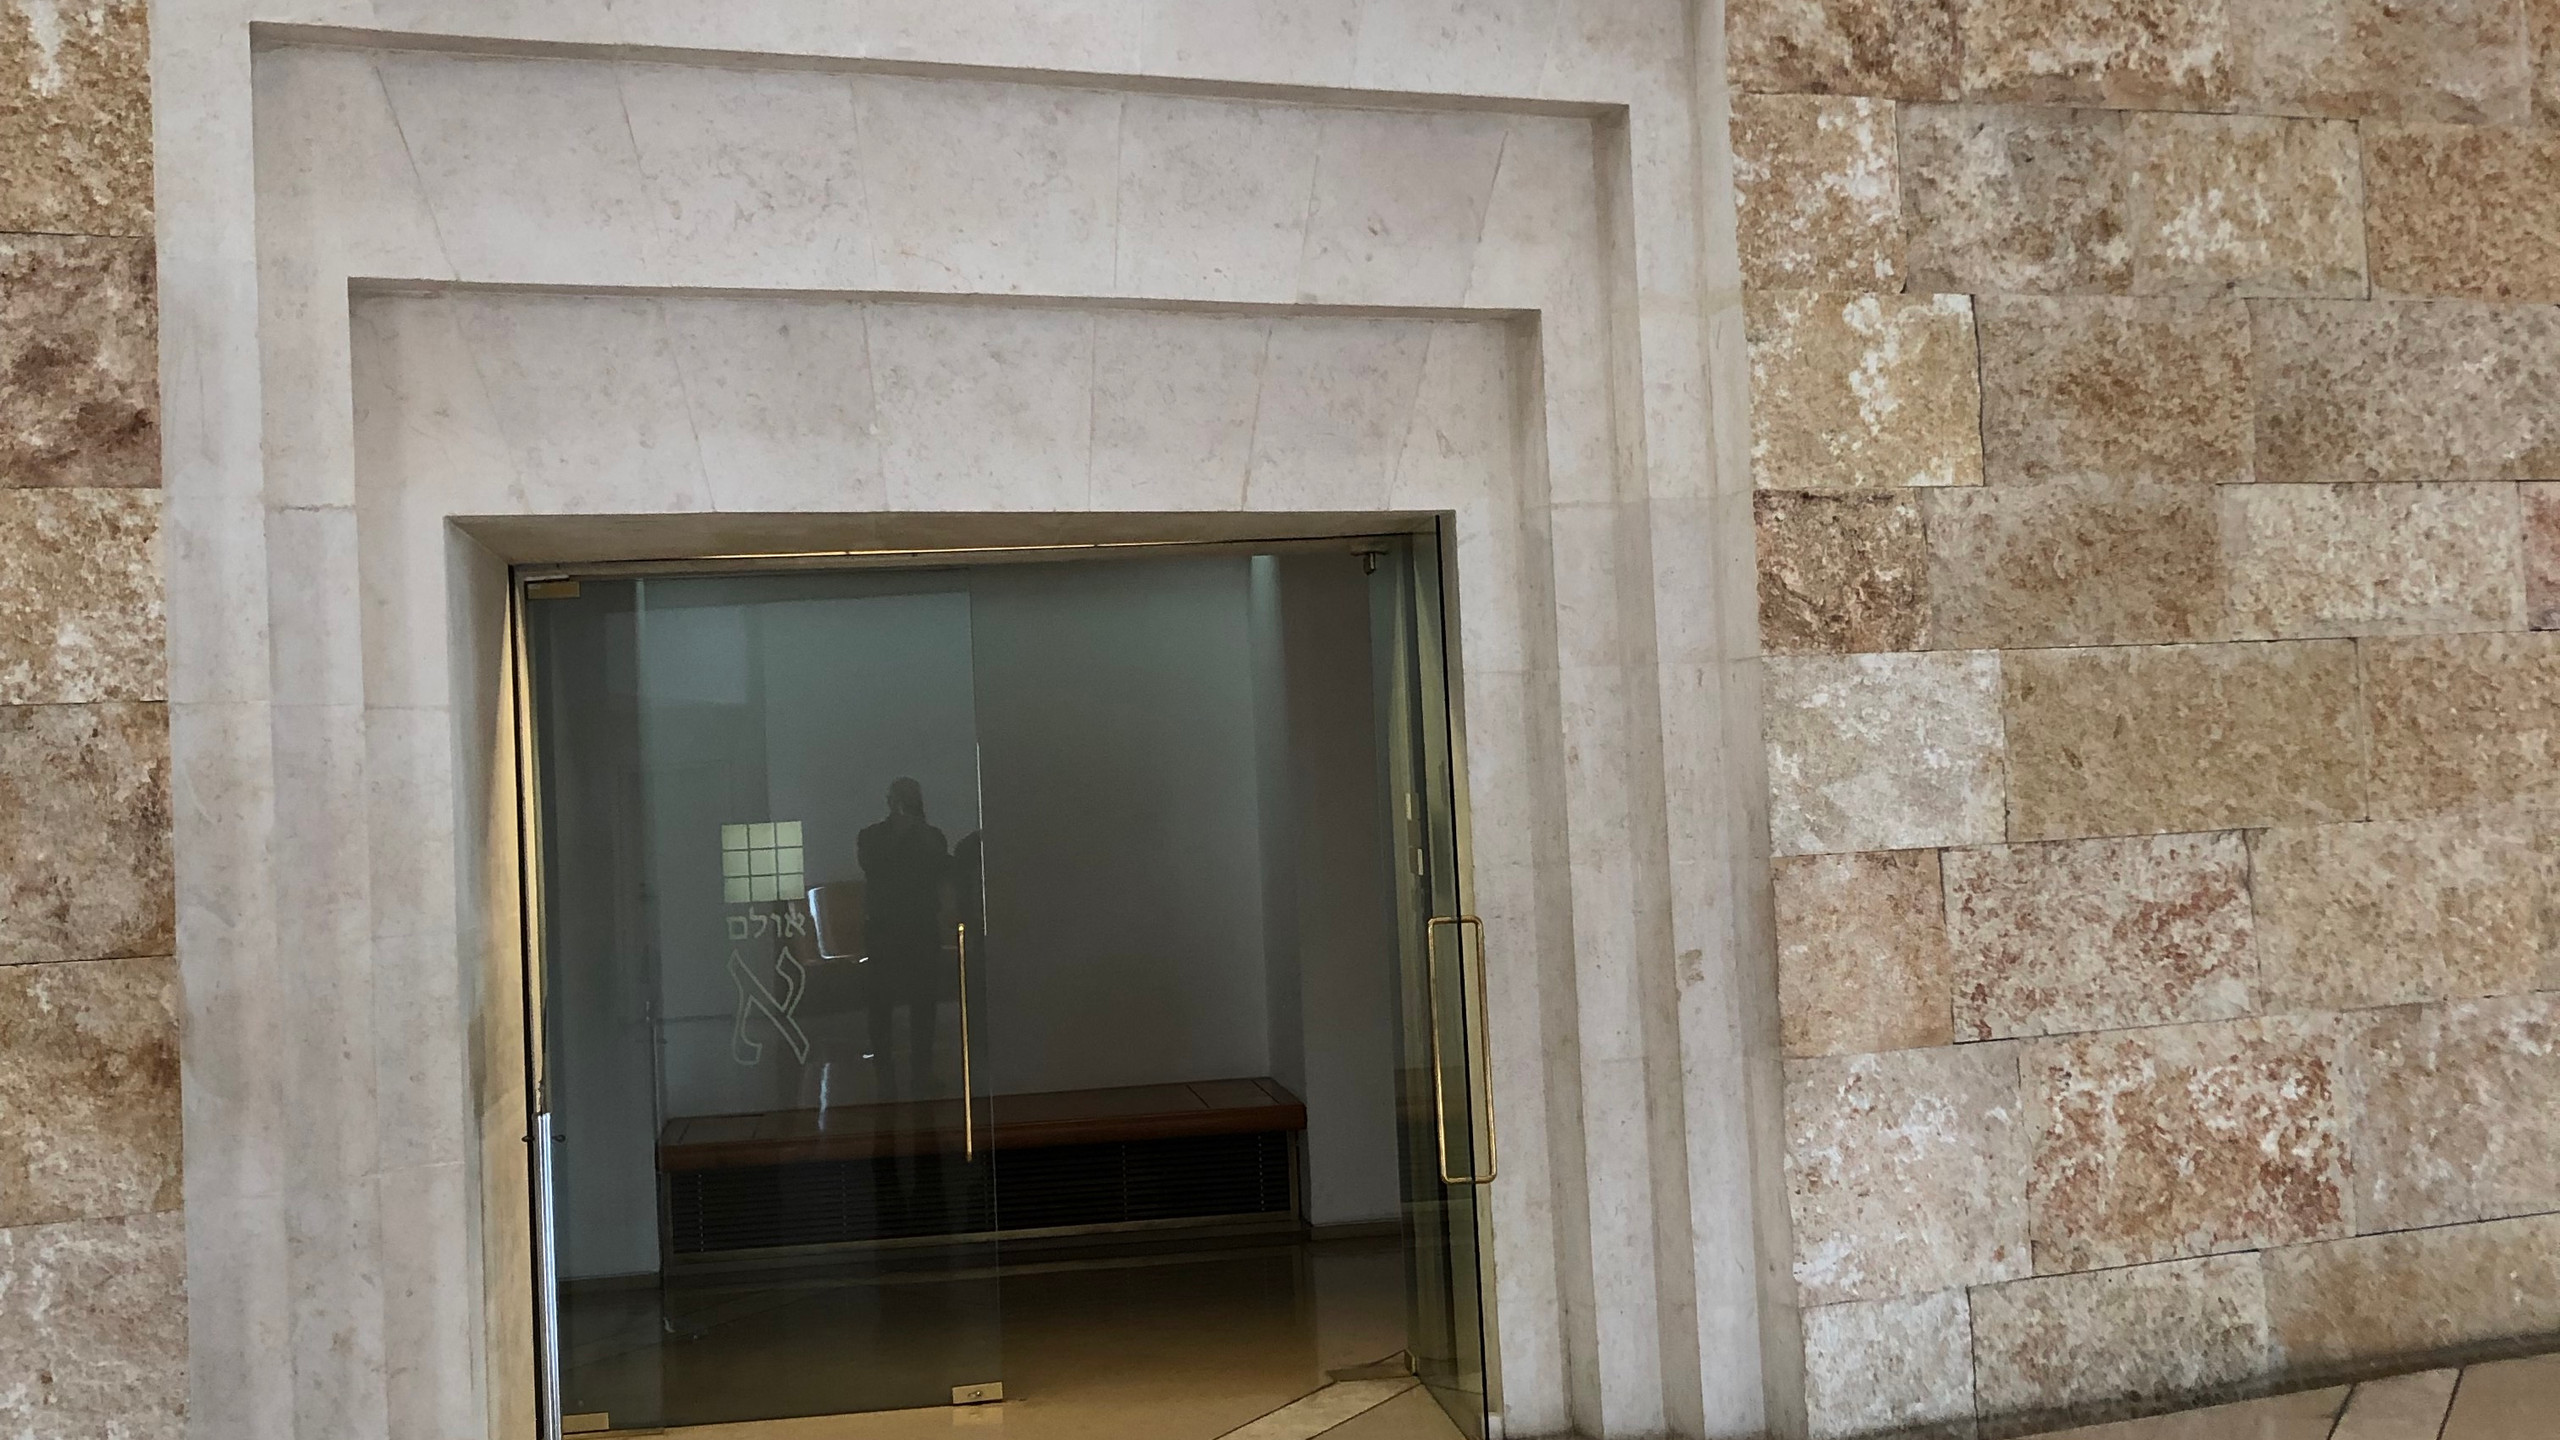 Doors into the courtrooms